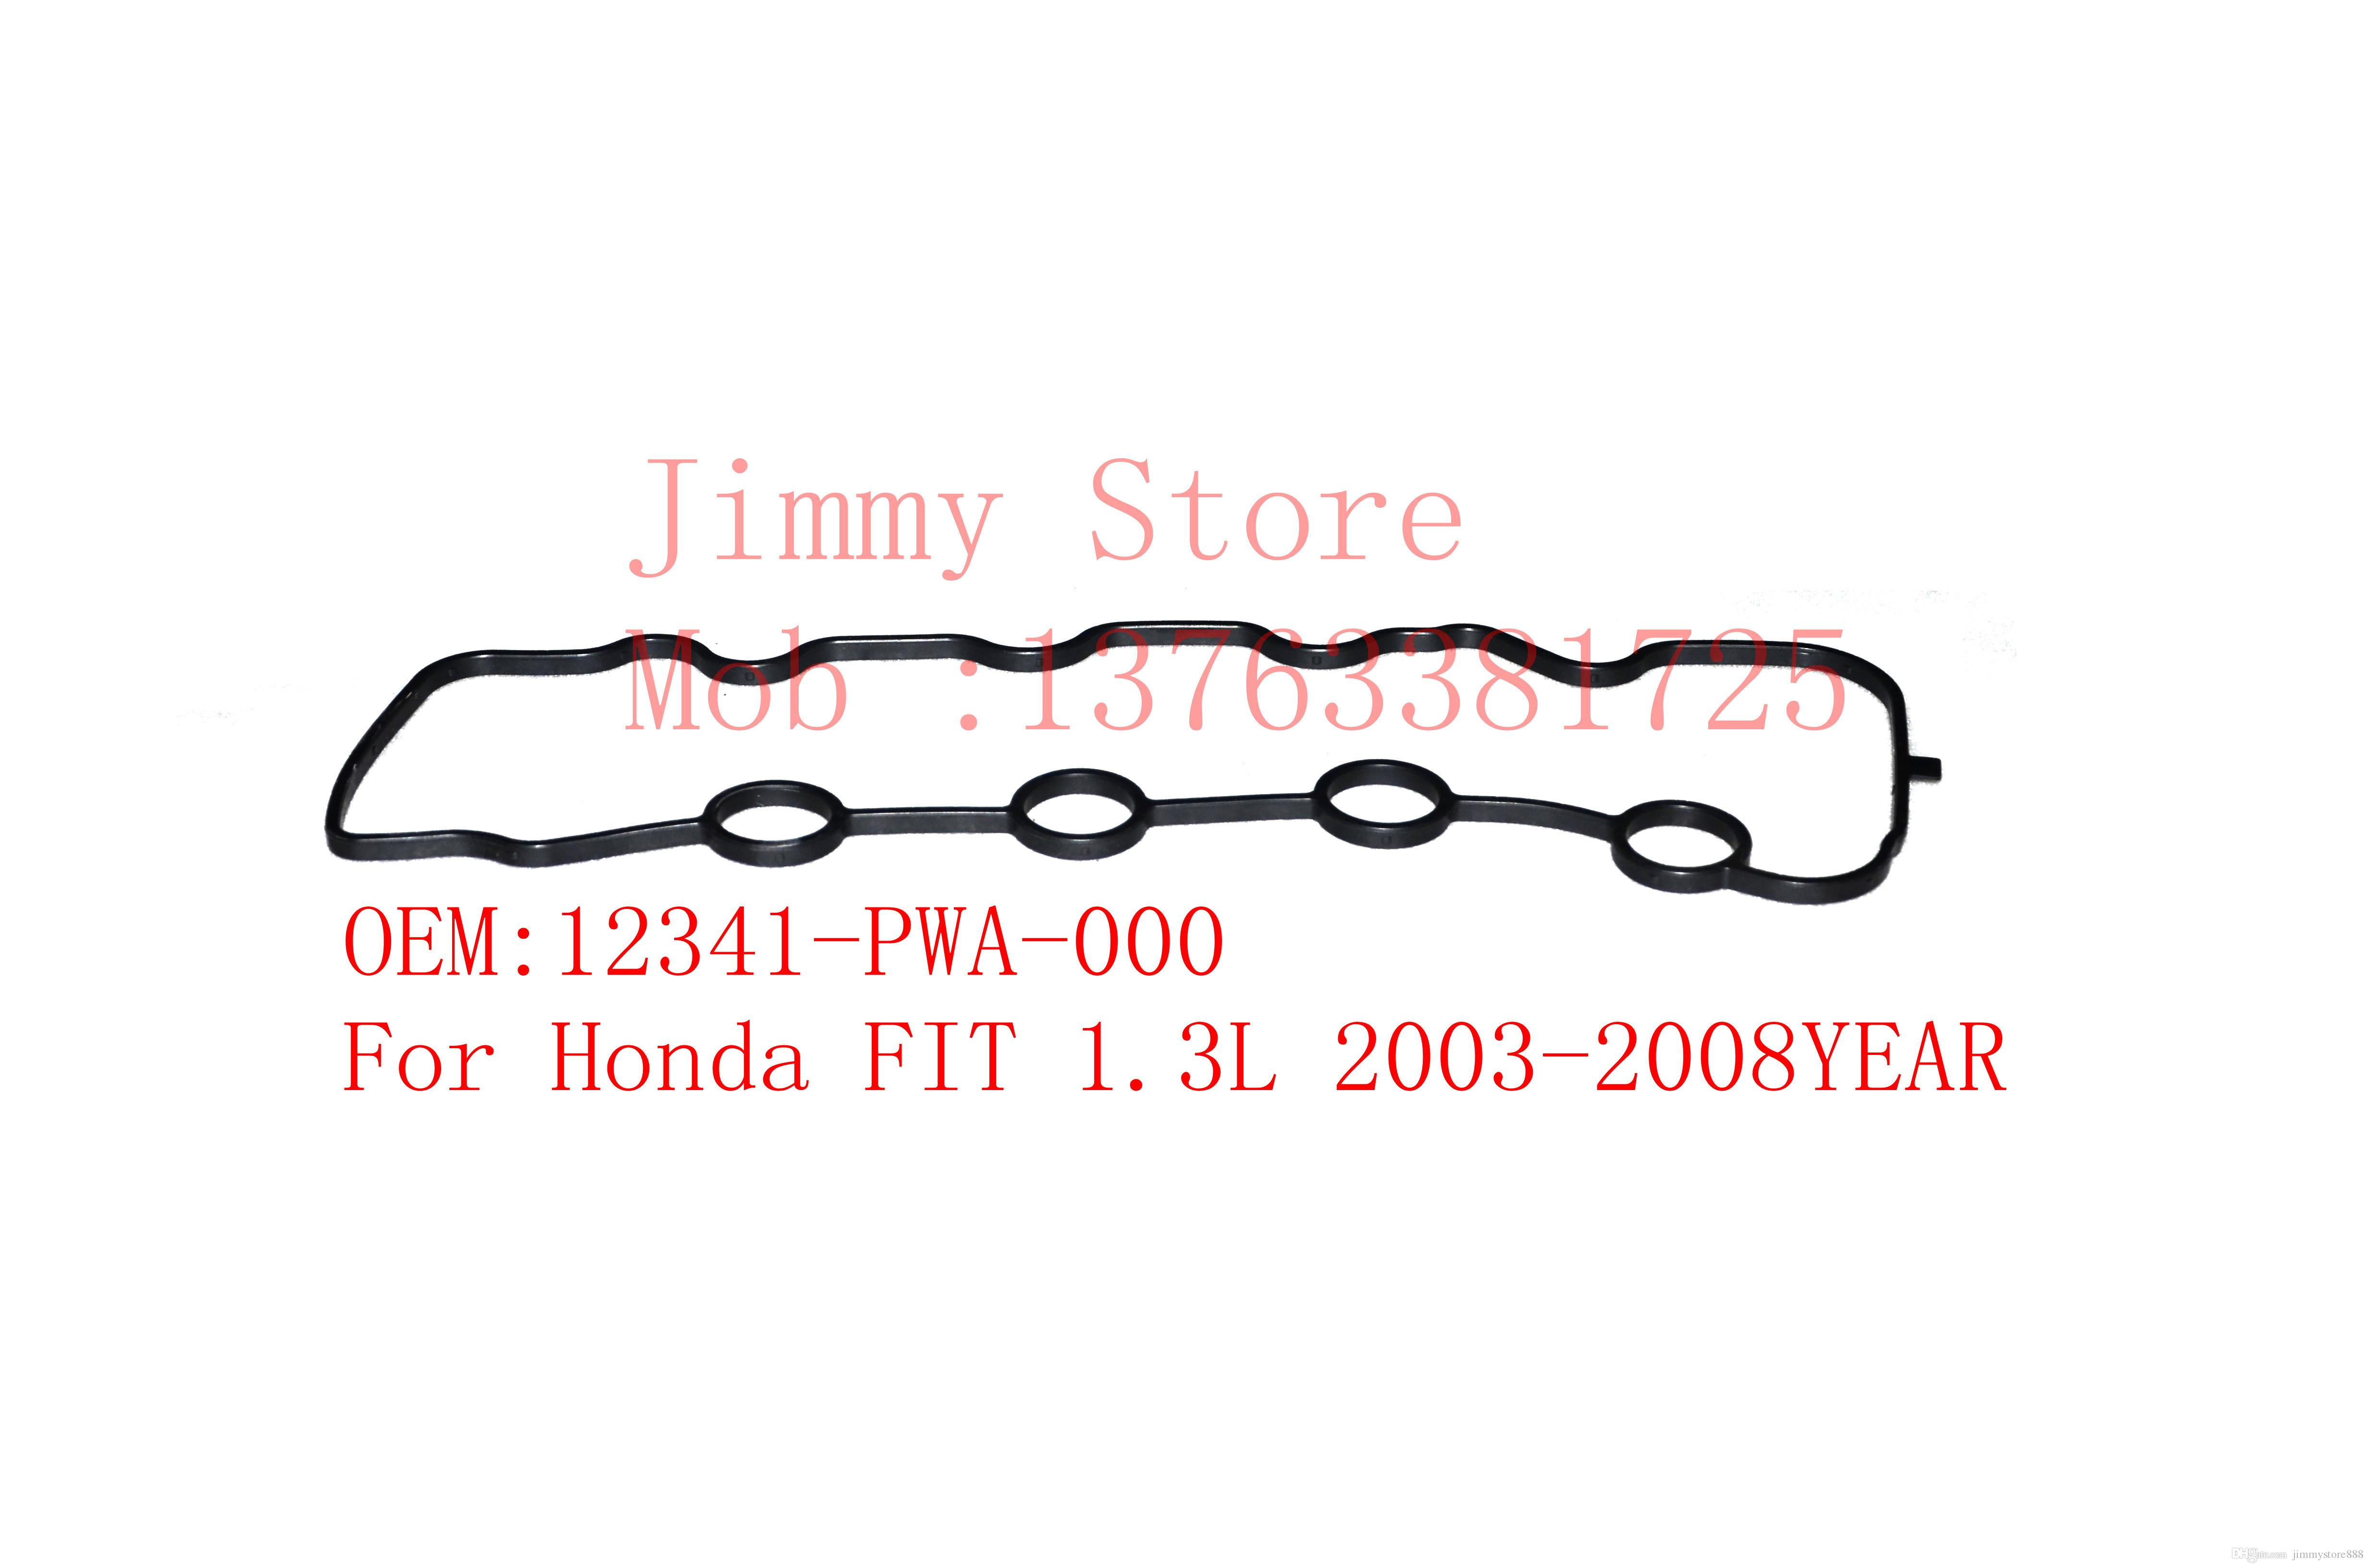 Valve Chamber Cover Gasket For Honda Fit 13l 15l 2003 2013year Wiring Front Component Speakersimg13701jpg Oem 12341 Pwa 000 Pwc Rb0 003 Auto Accessories Parts